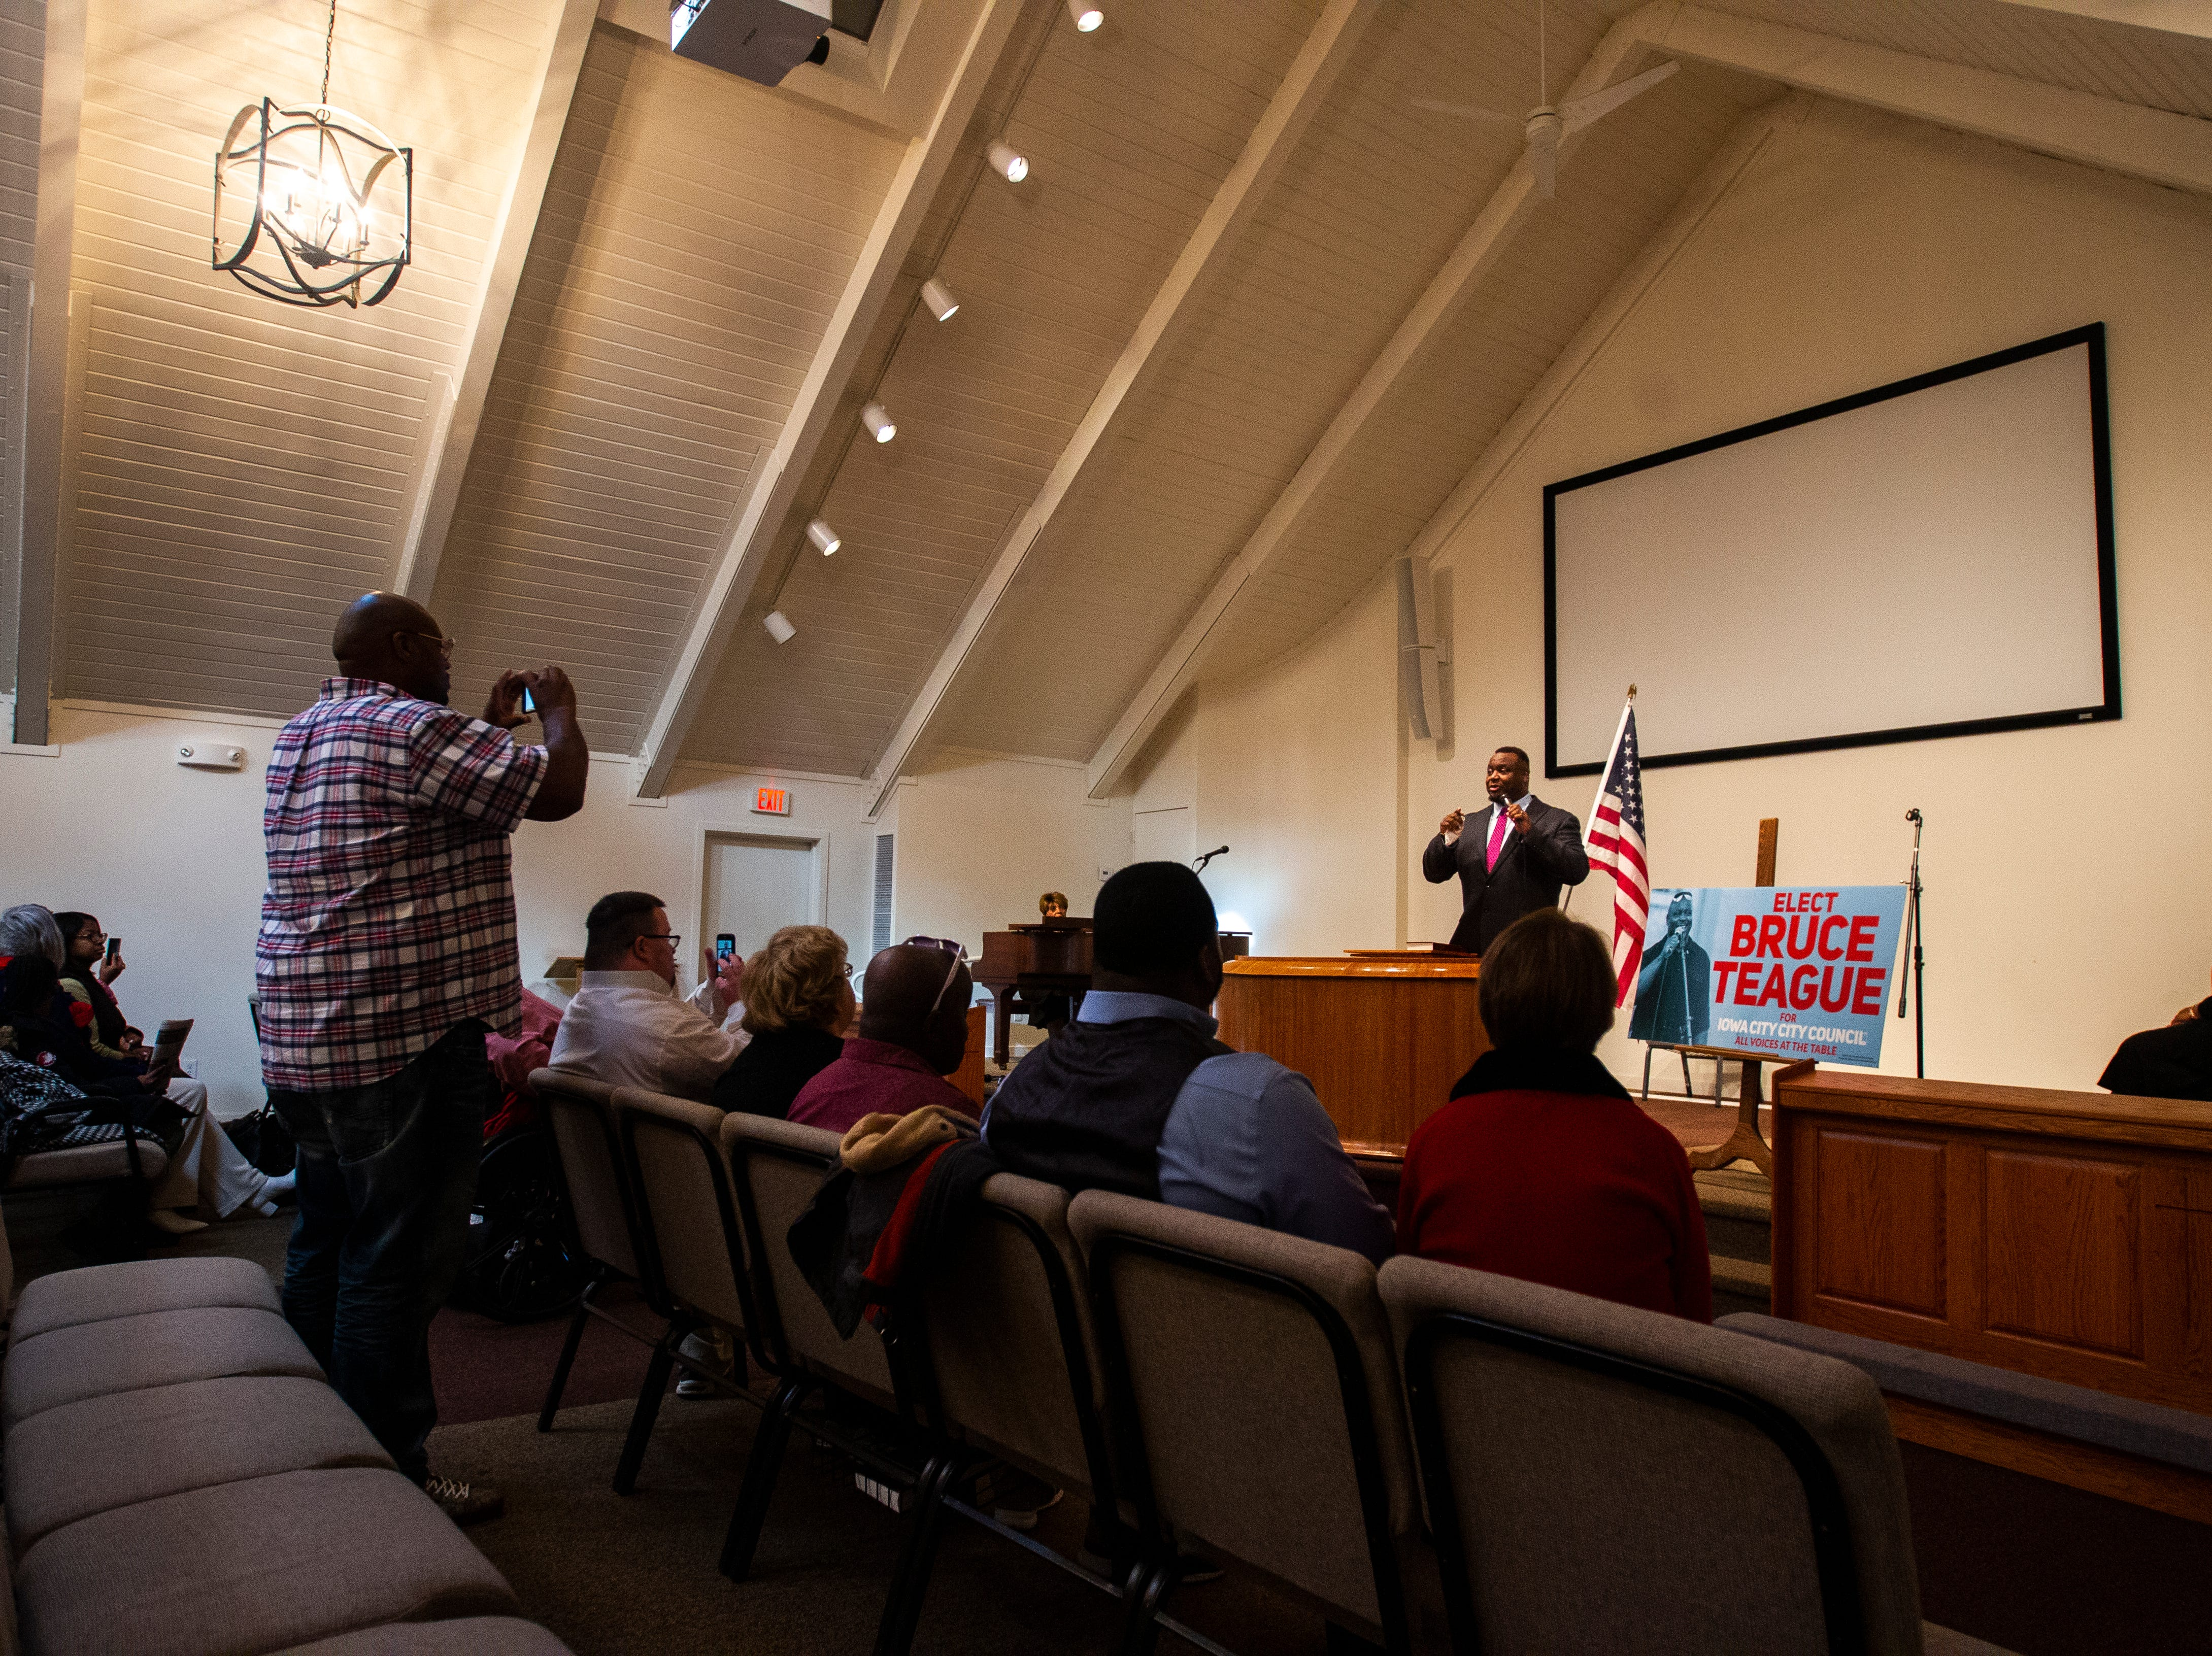 Iowa City councilor Bruce Teague thanks supporters while his cousin, Pastor Harrold Washington, takes a photo after a swearing in ceremony on Saturday, Oct. 13, 2018, at the Church of Nazarene on Wade Street in Iowa City.